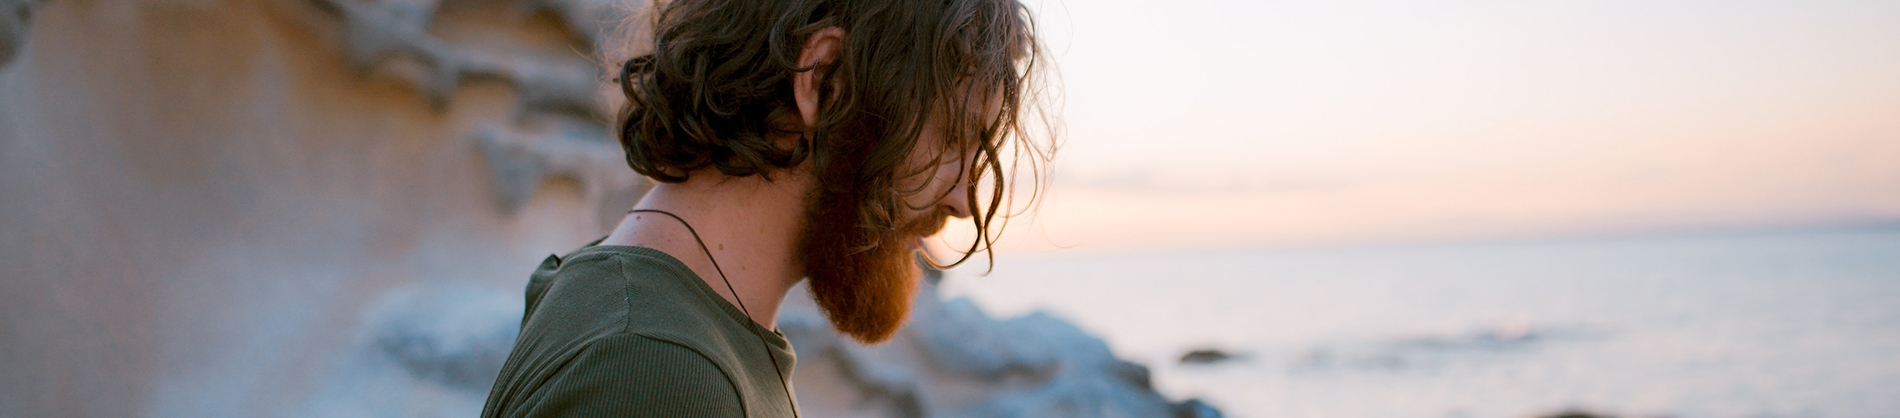 A bearded guy stood by the ocean looking down